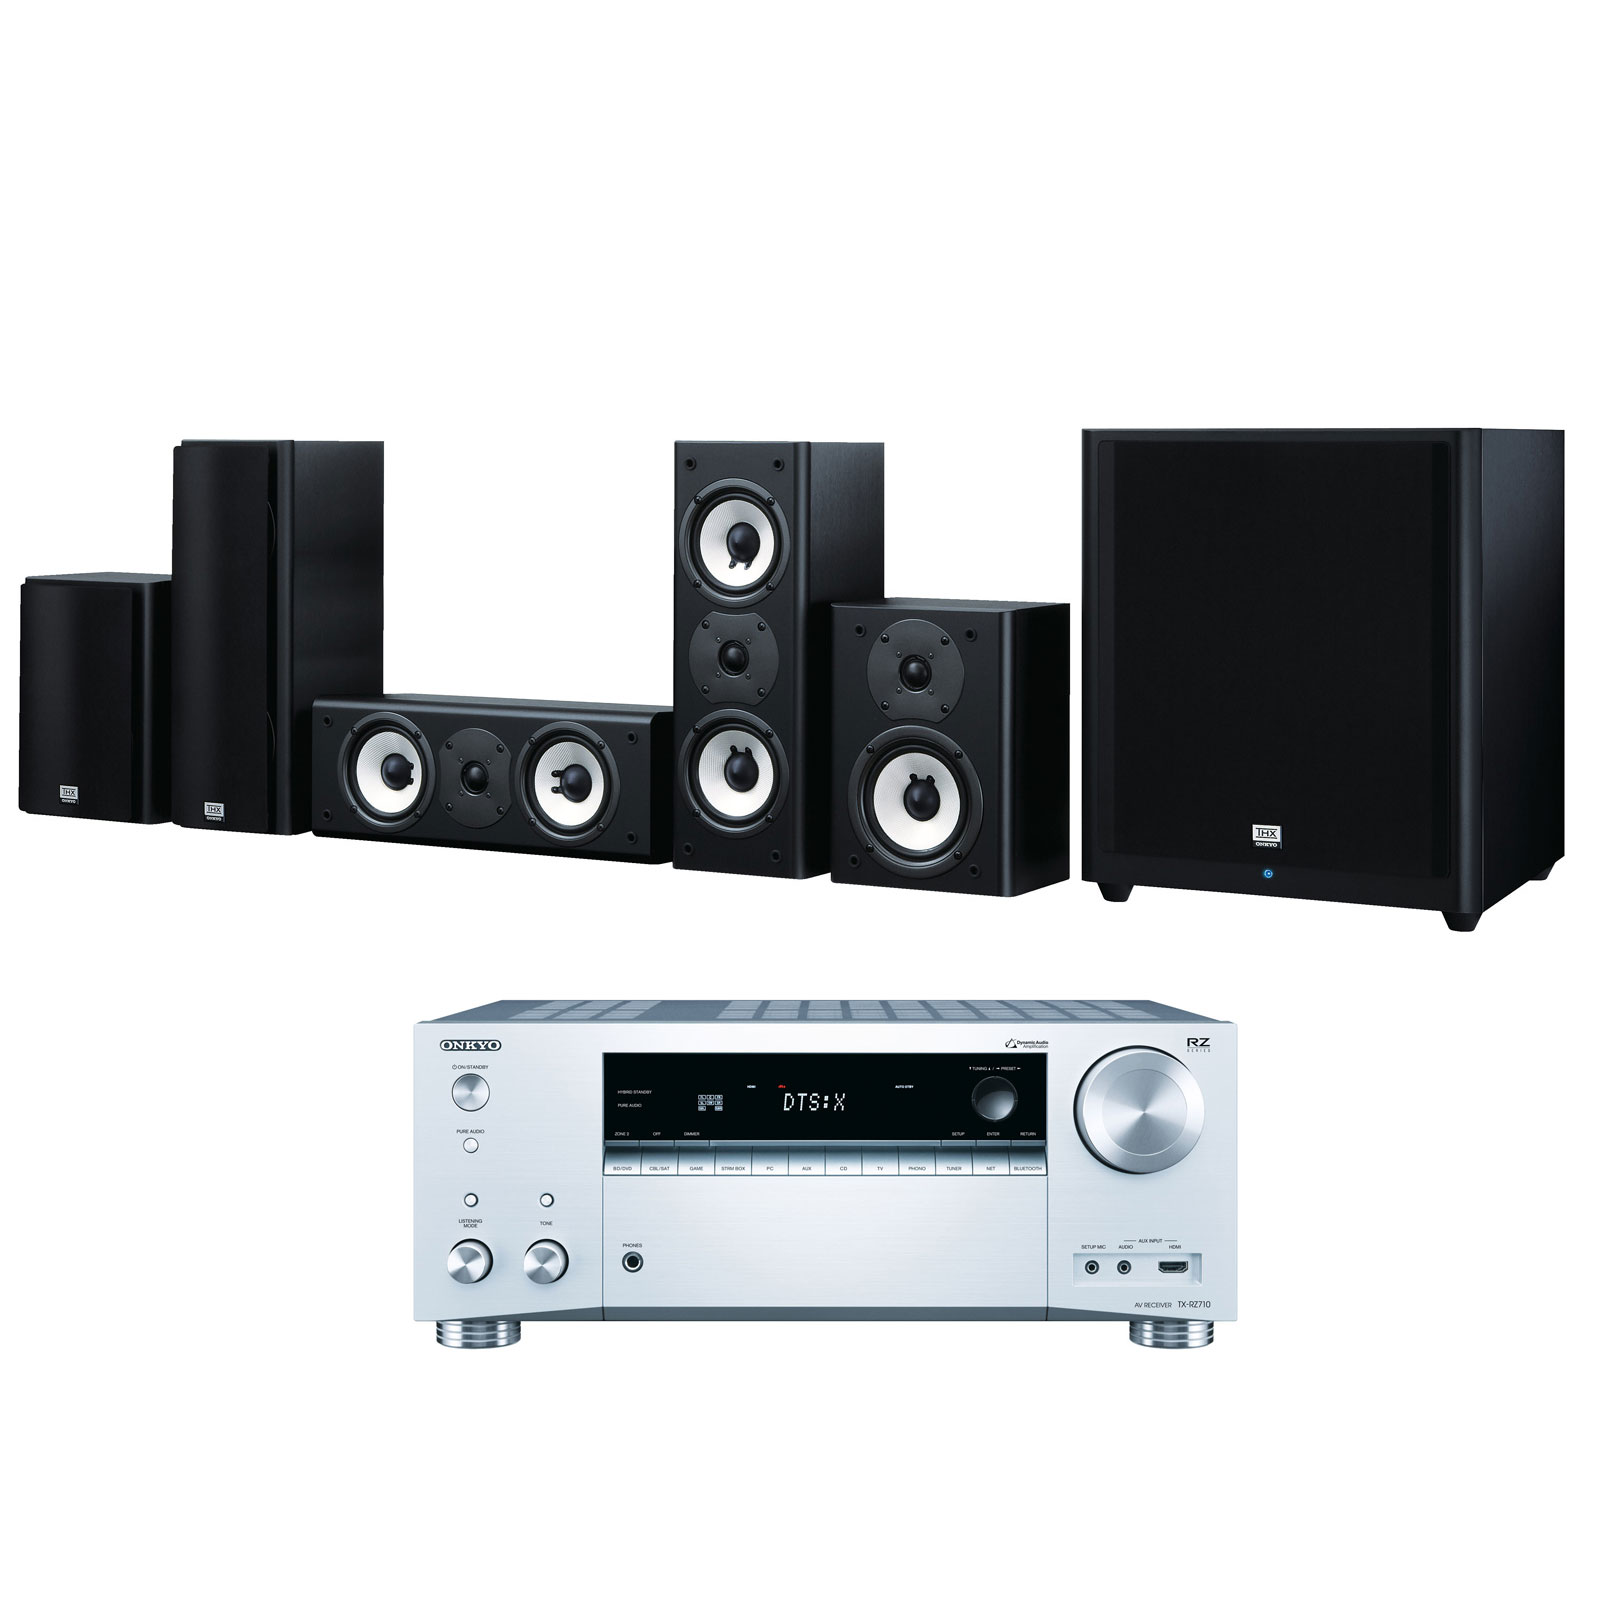 Ensemble home cinéma Onkyo TX-RZ710 Argent + SKS-HT978THX Ampli-tuner Home Cinéma 7.2 - THX - Bluetooth - Wi-Fi - Dolby Atmos - DTS:X - HDCP 2.2 - Hi-Res Audio - 8 entrées HDMI + Pack d'enceintes 5.1 certification THX